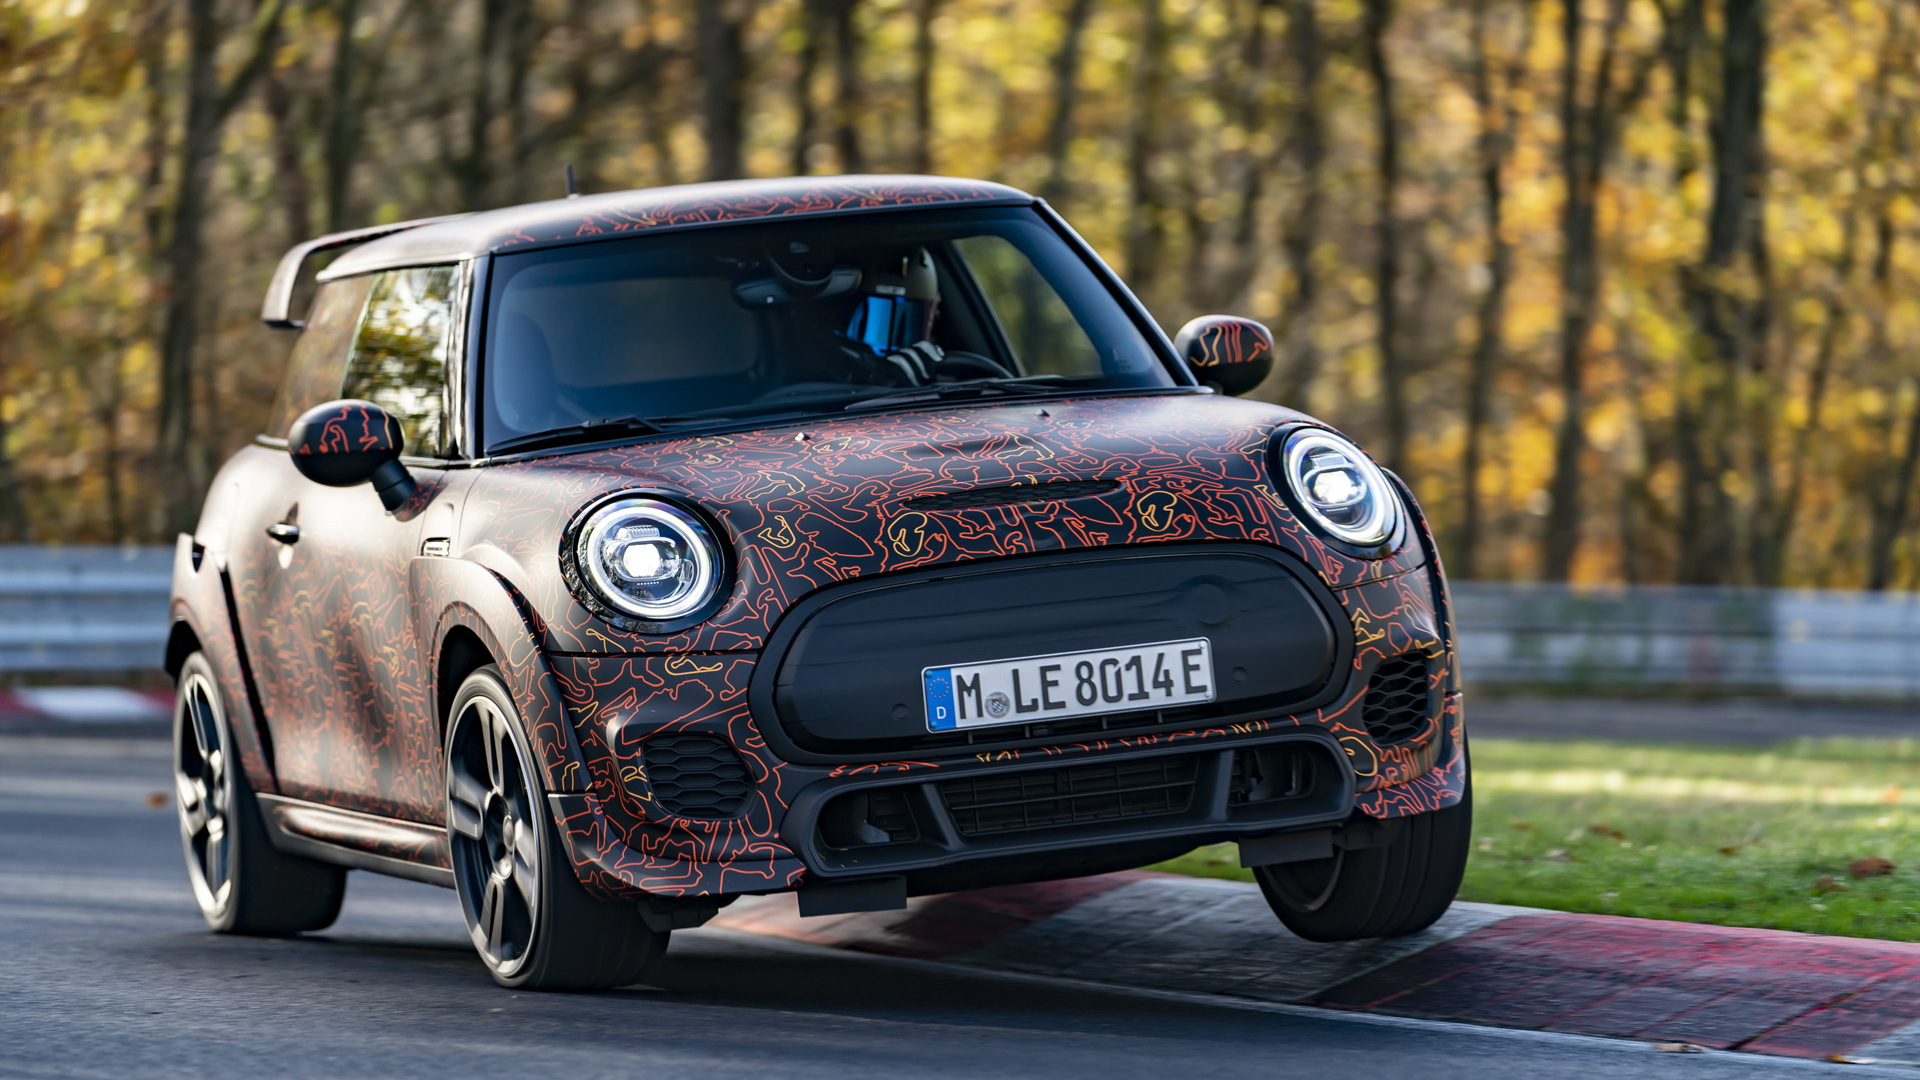 Test mule for electric Mini John Cooper Works model